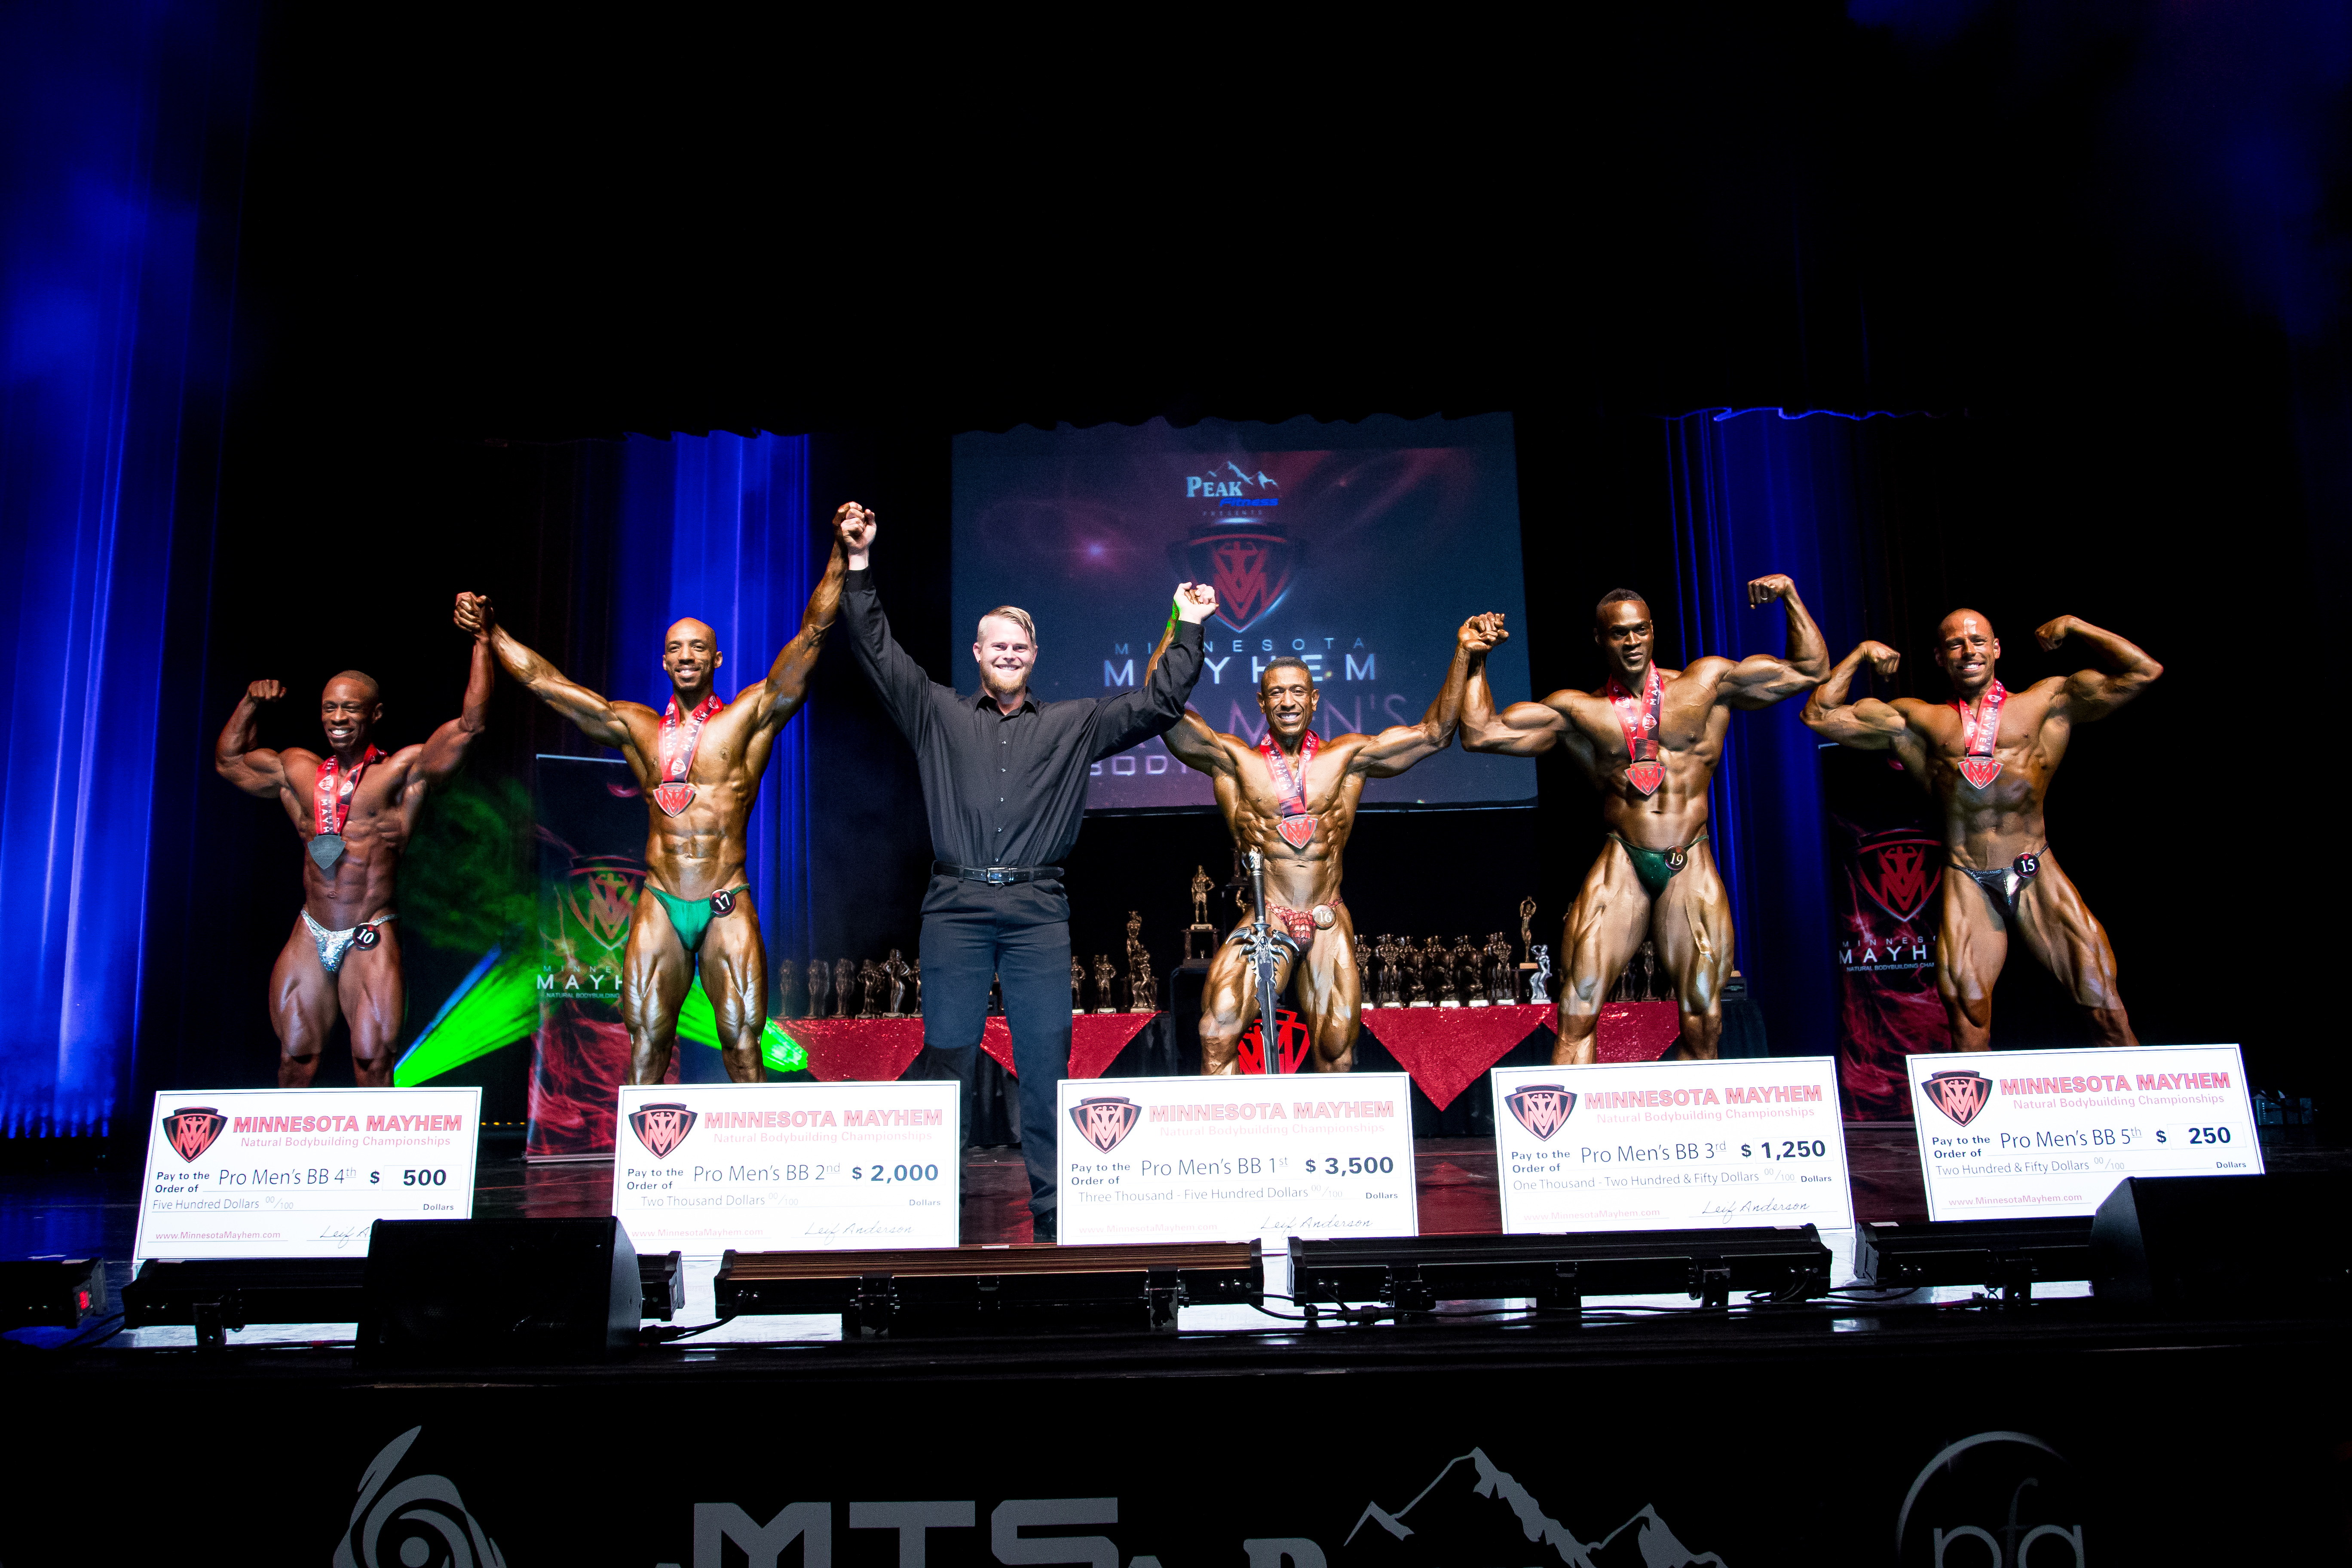 Minnesota Bodybuilding Competition Raises the Bar on Excellence 6